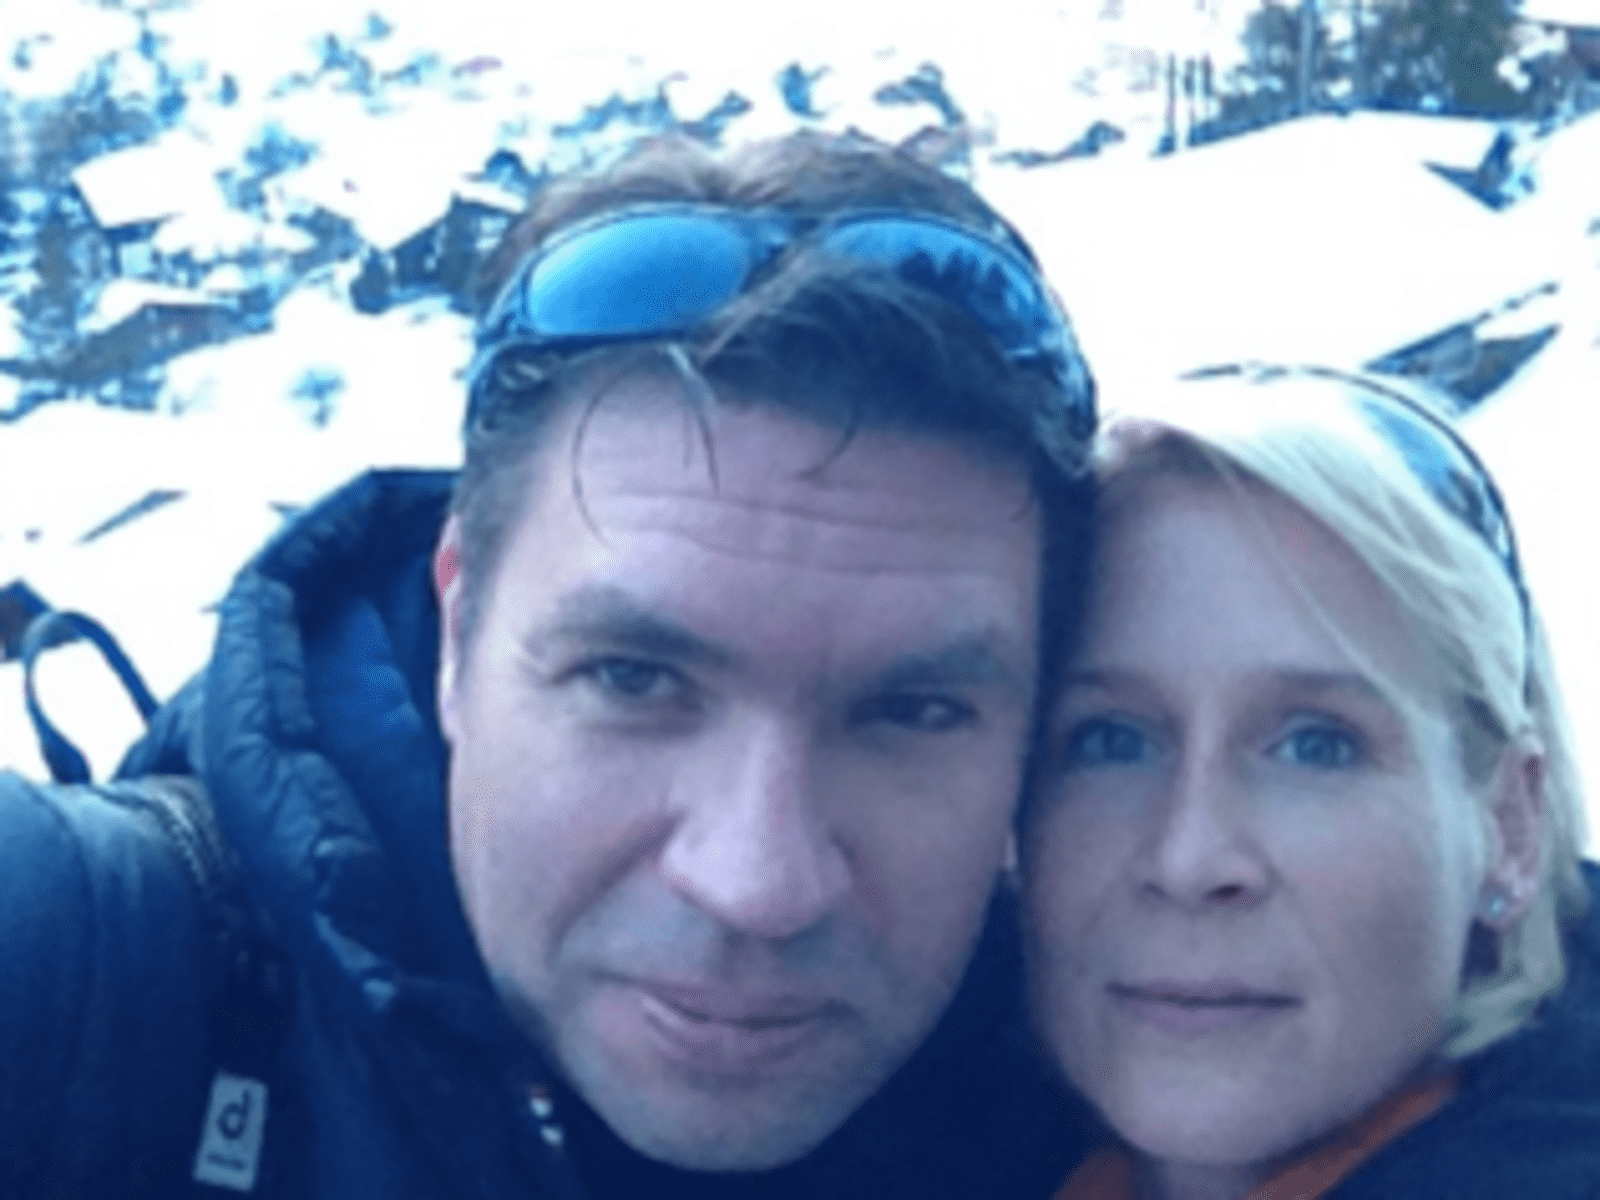 Regula & Andreas from Bern, Switzerland